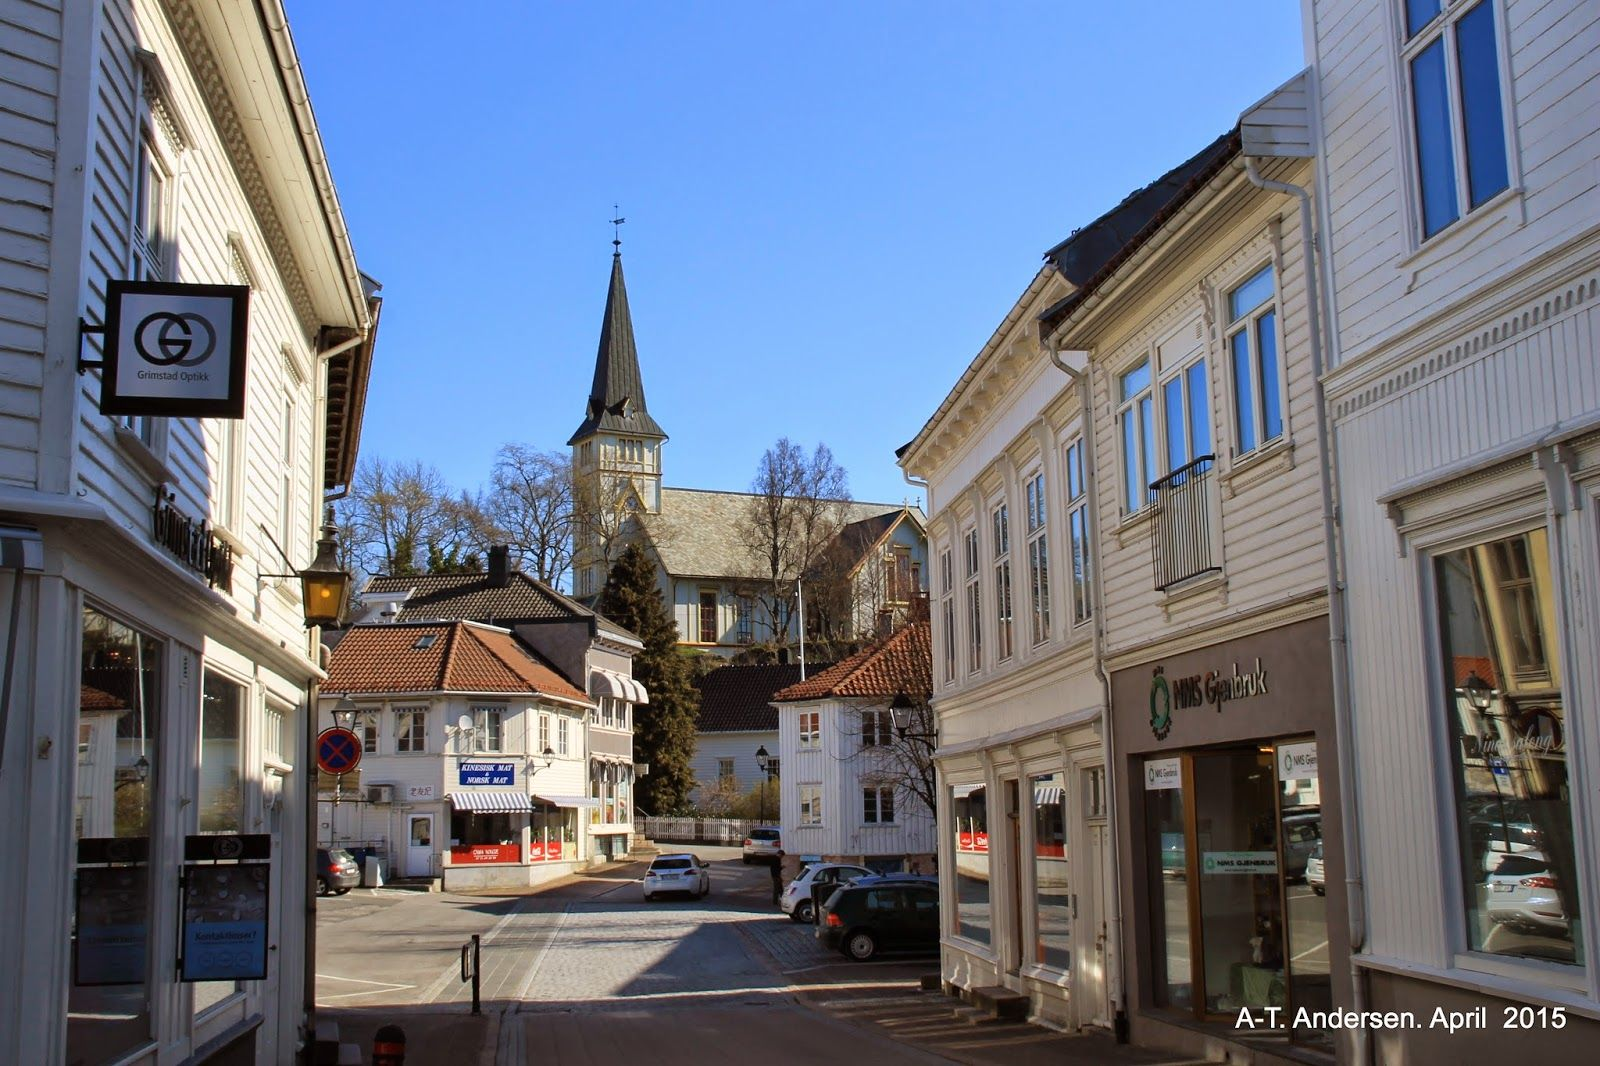 Captured  moments: A little stop in Grimstad city